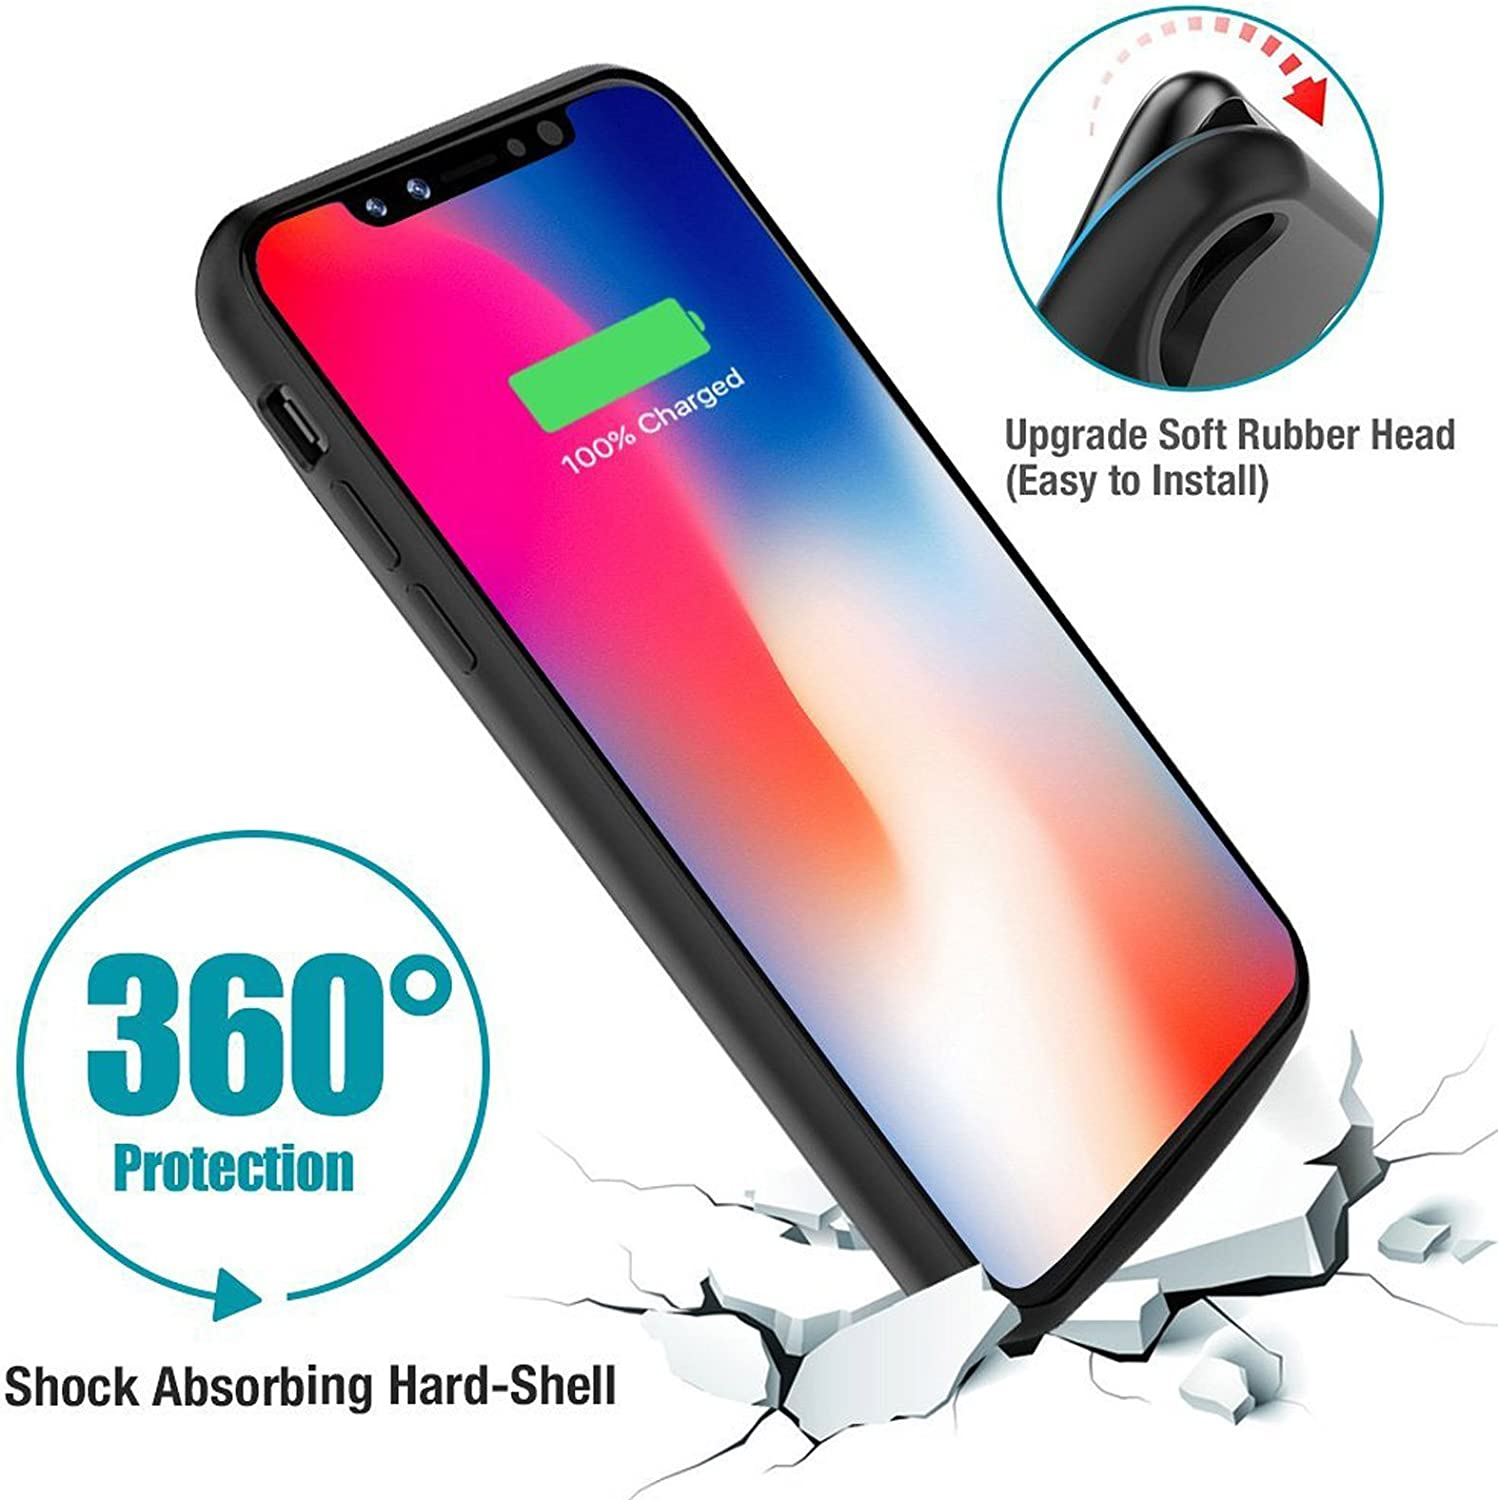 Apple Certified Chip Black iPhone X Battery Case Qi Wireless Charging Compatible MFI 6000 mAh Slim Rechargeable Extended Protective Portable Charger for iPhone X